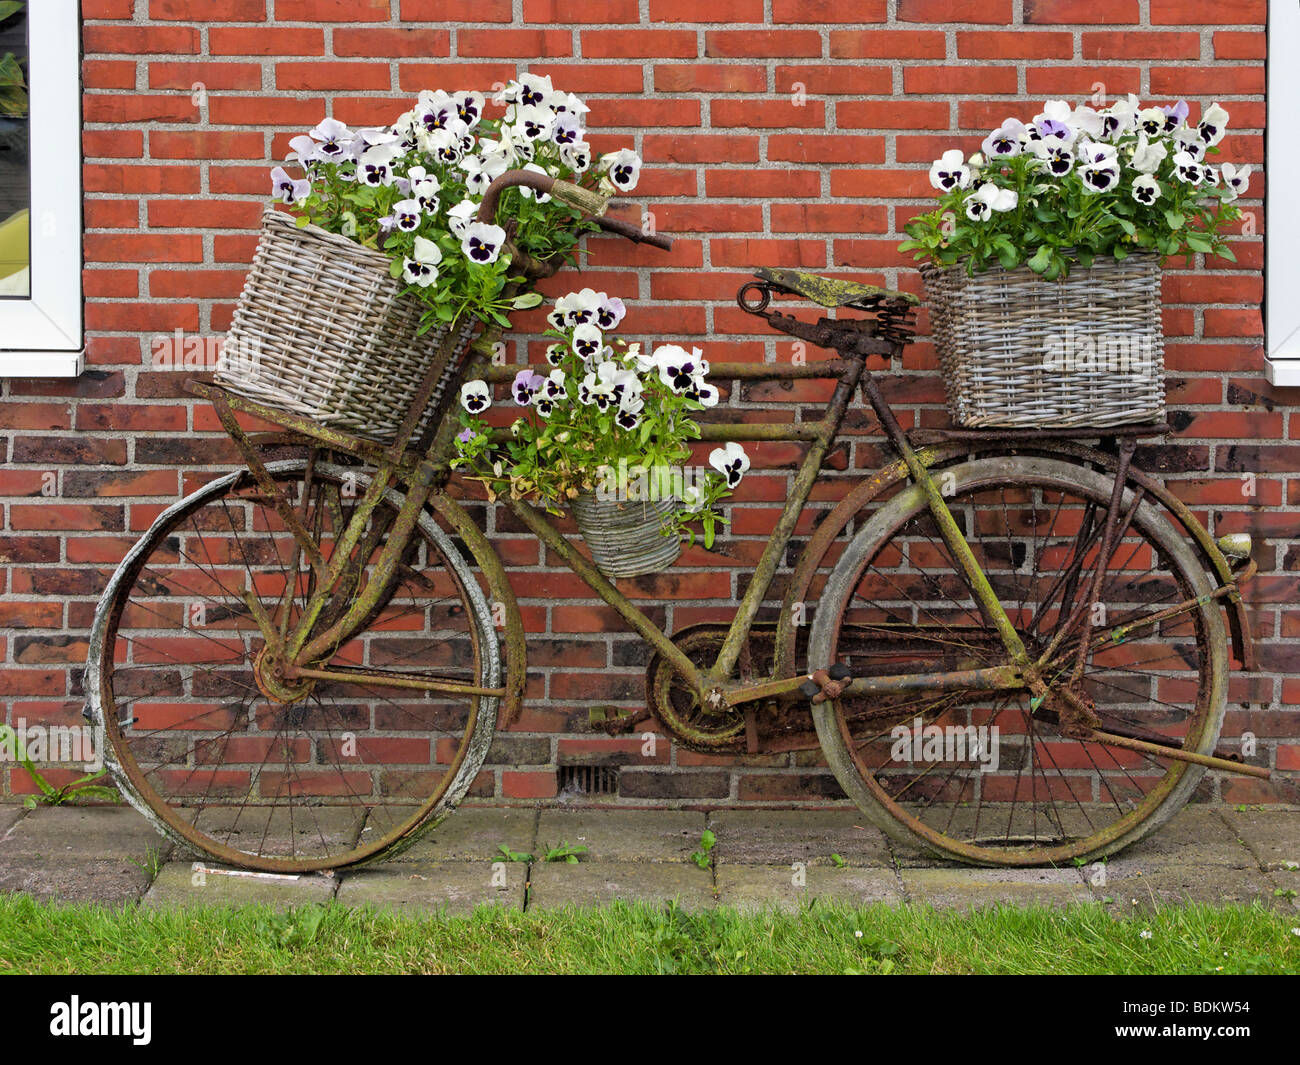 Old bicycle decorated with baskets of pansies, in the village of Kleine Huisjes, Groningen, Netherlands. - Stock Image